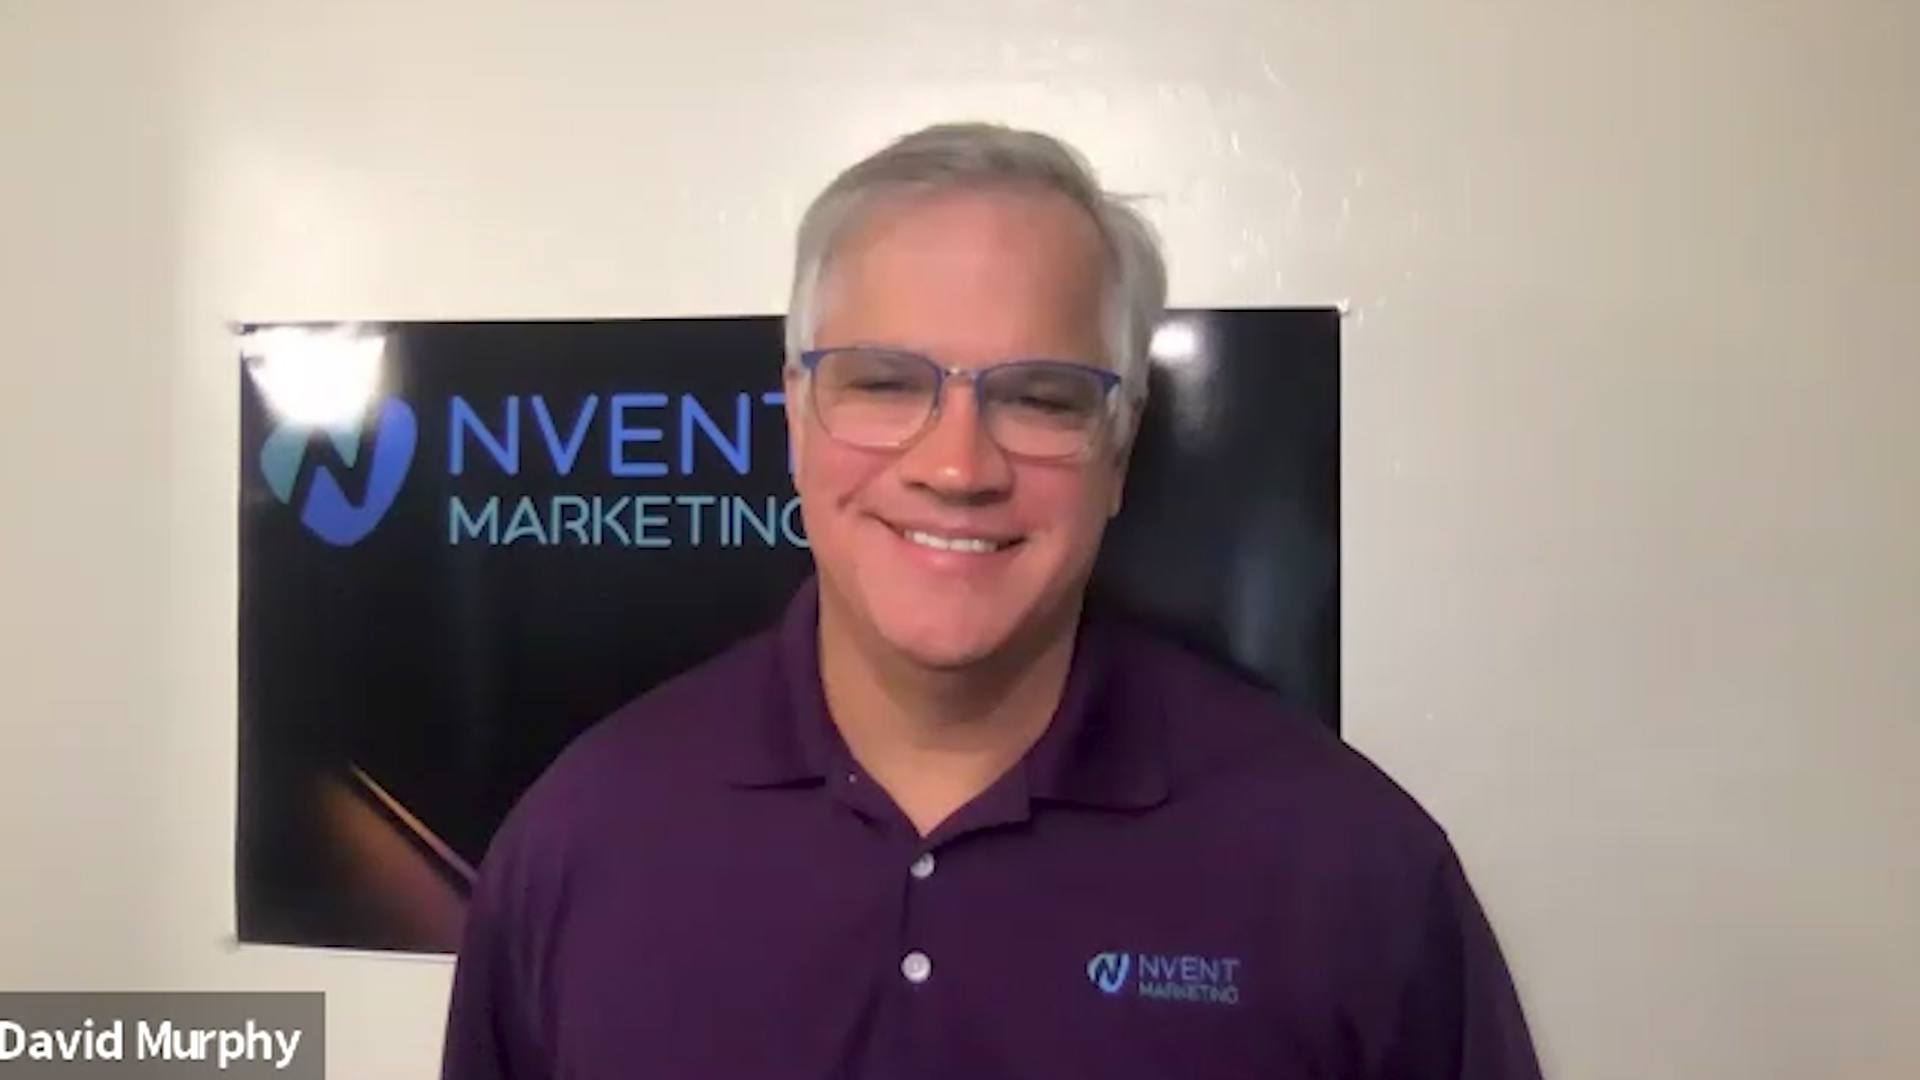 Video preview: Long-time Marketing Expert David Murphy Shares Digital Marketing Strategies